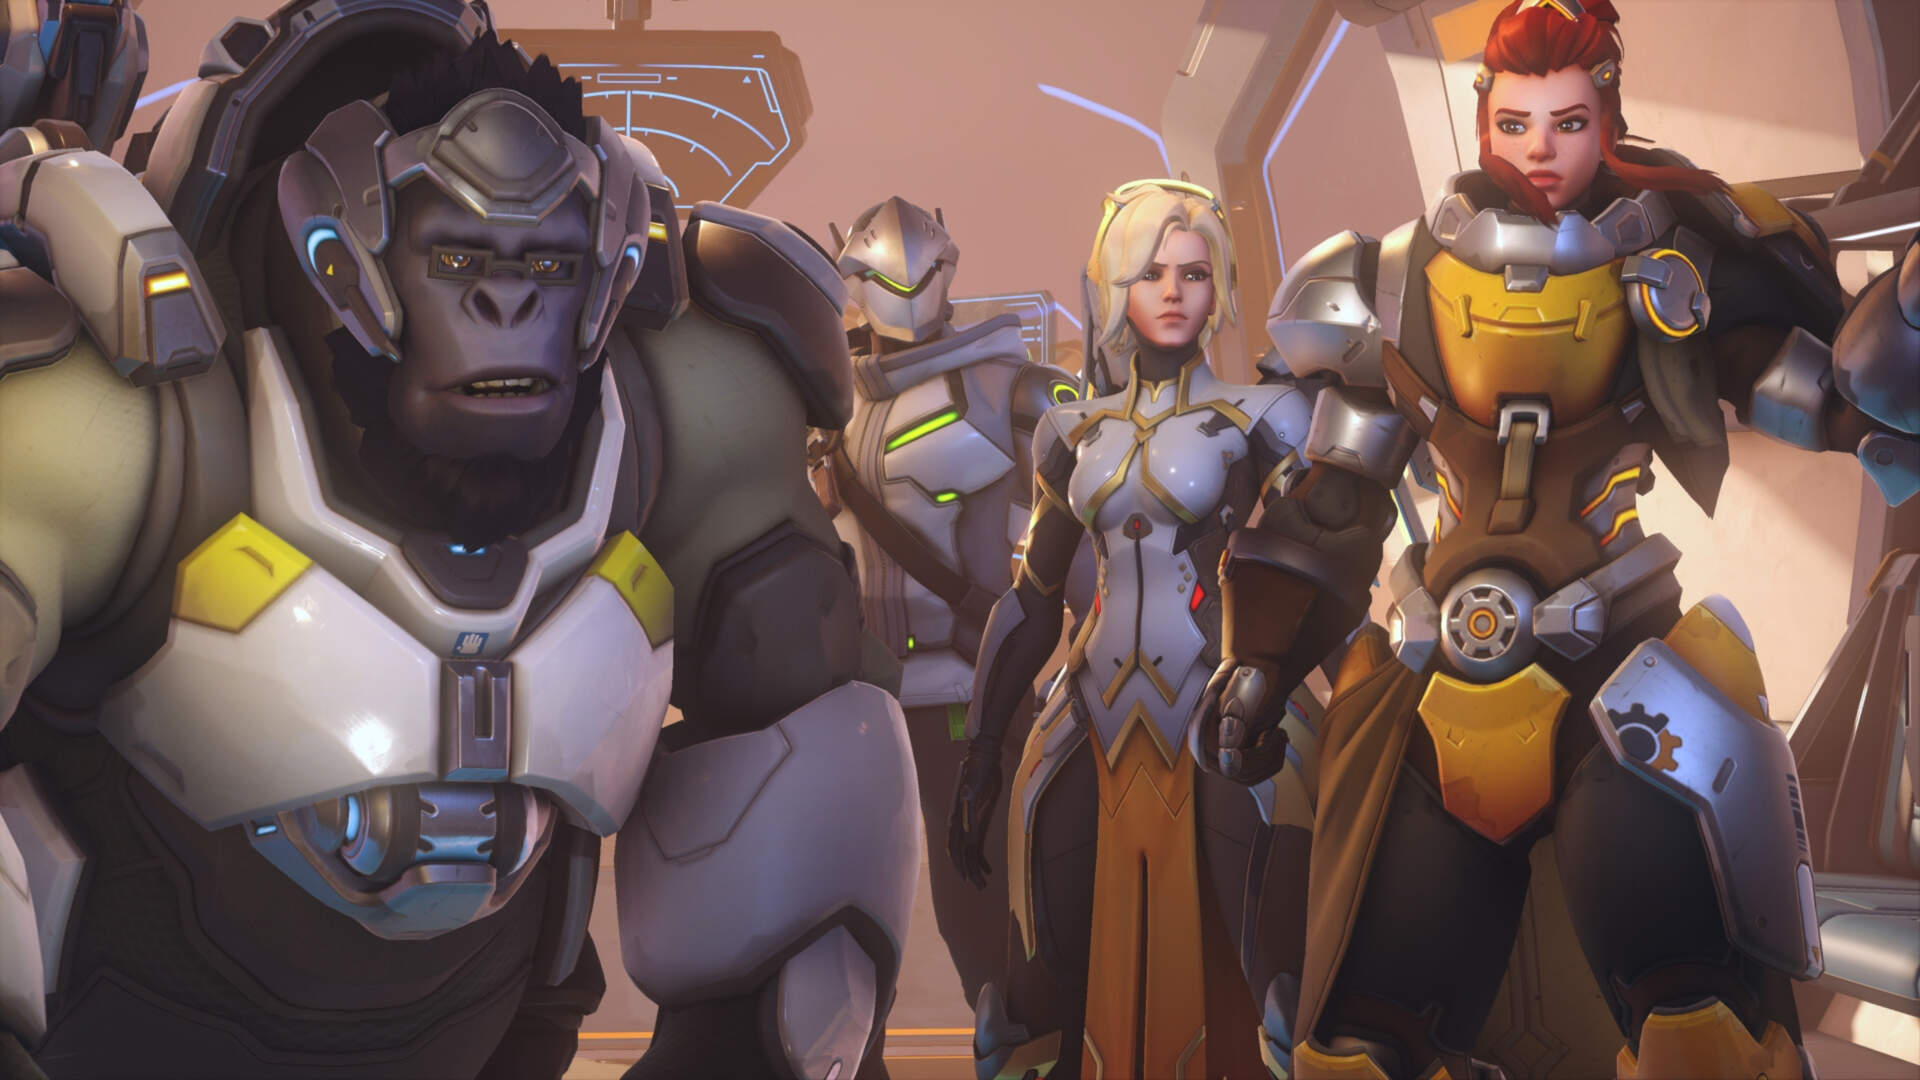 Blizzard Confirms Overwatch Players Will Be Able to Play Overwatch 2 PvP Content